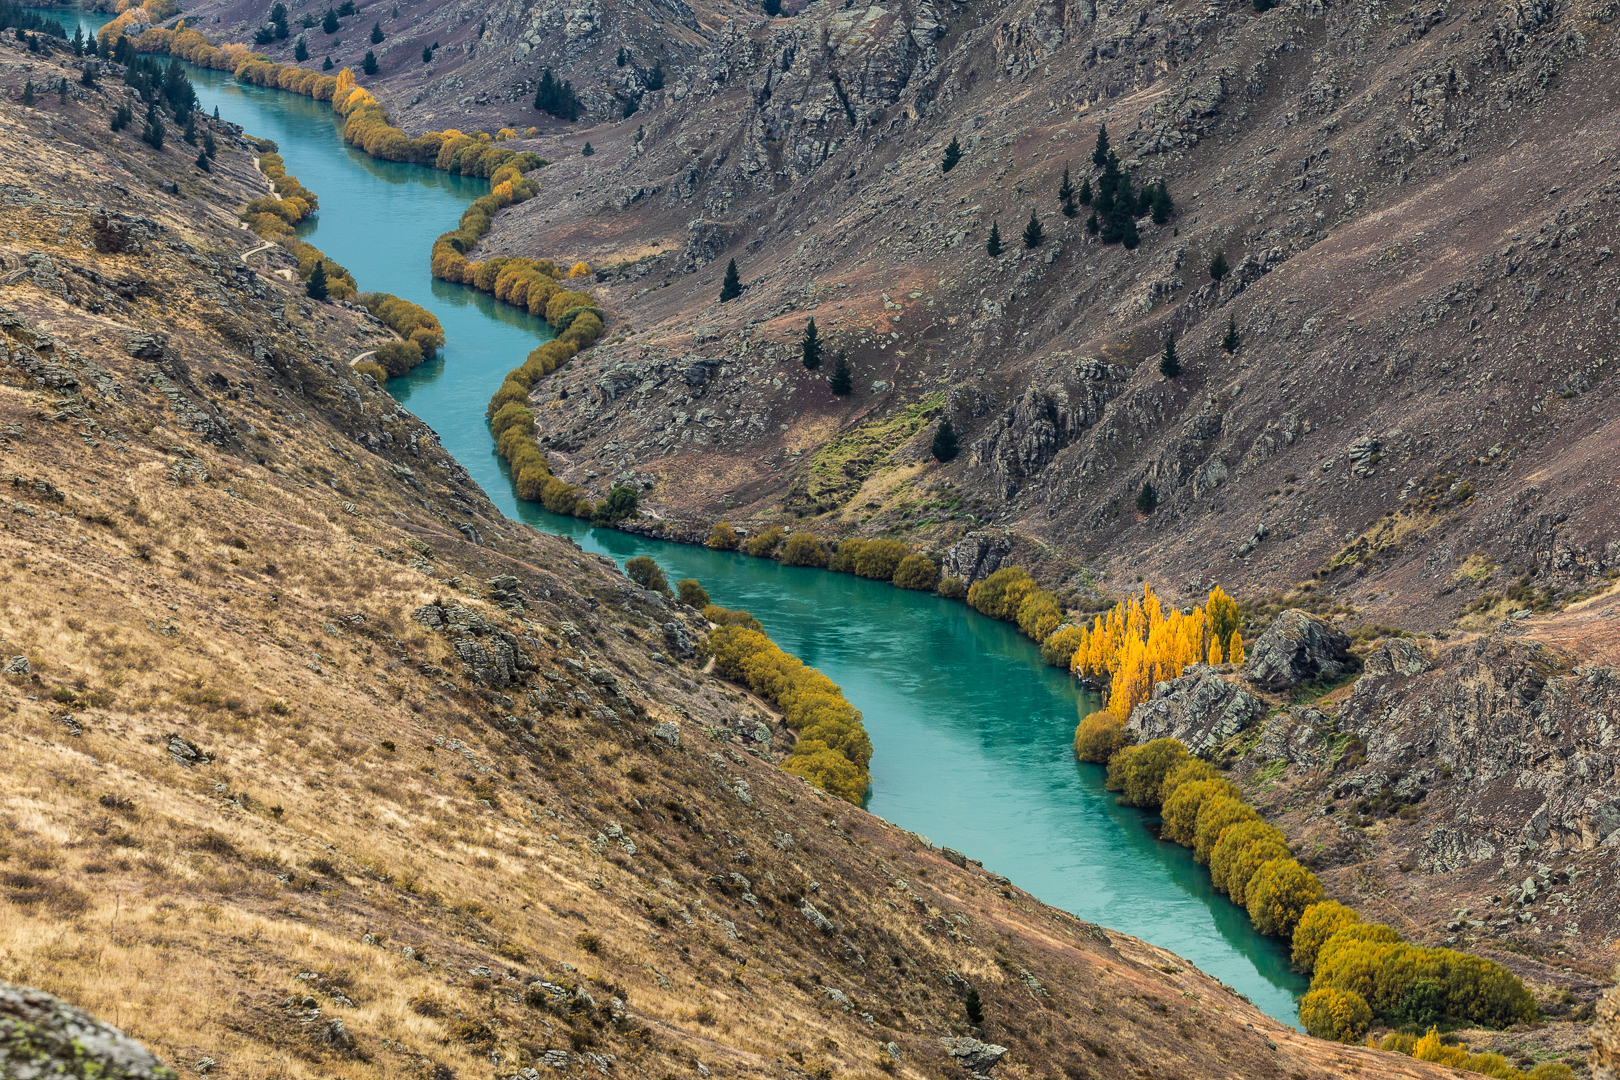 The Clutha River